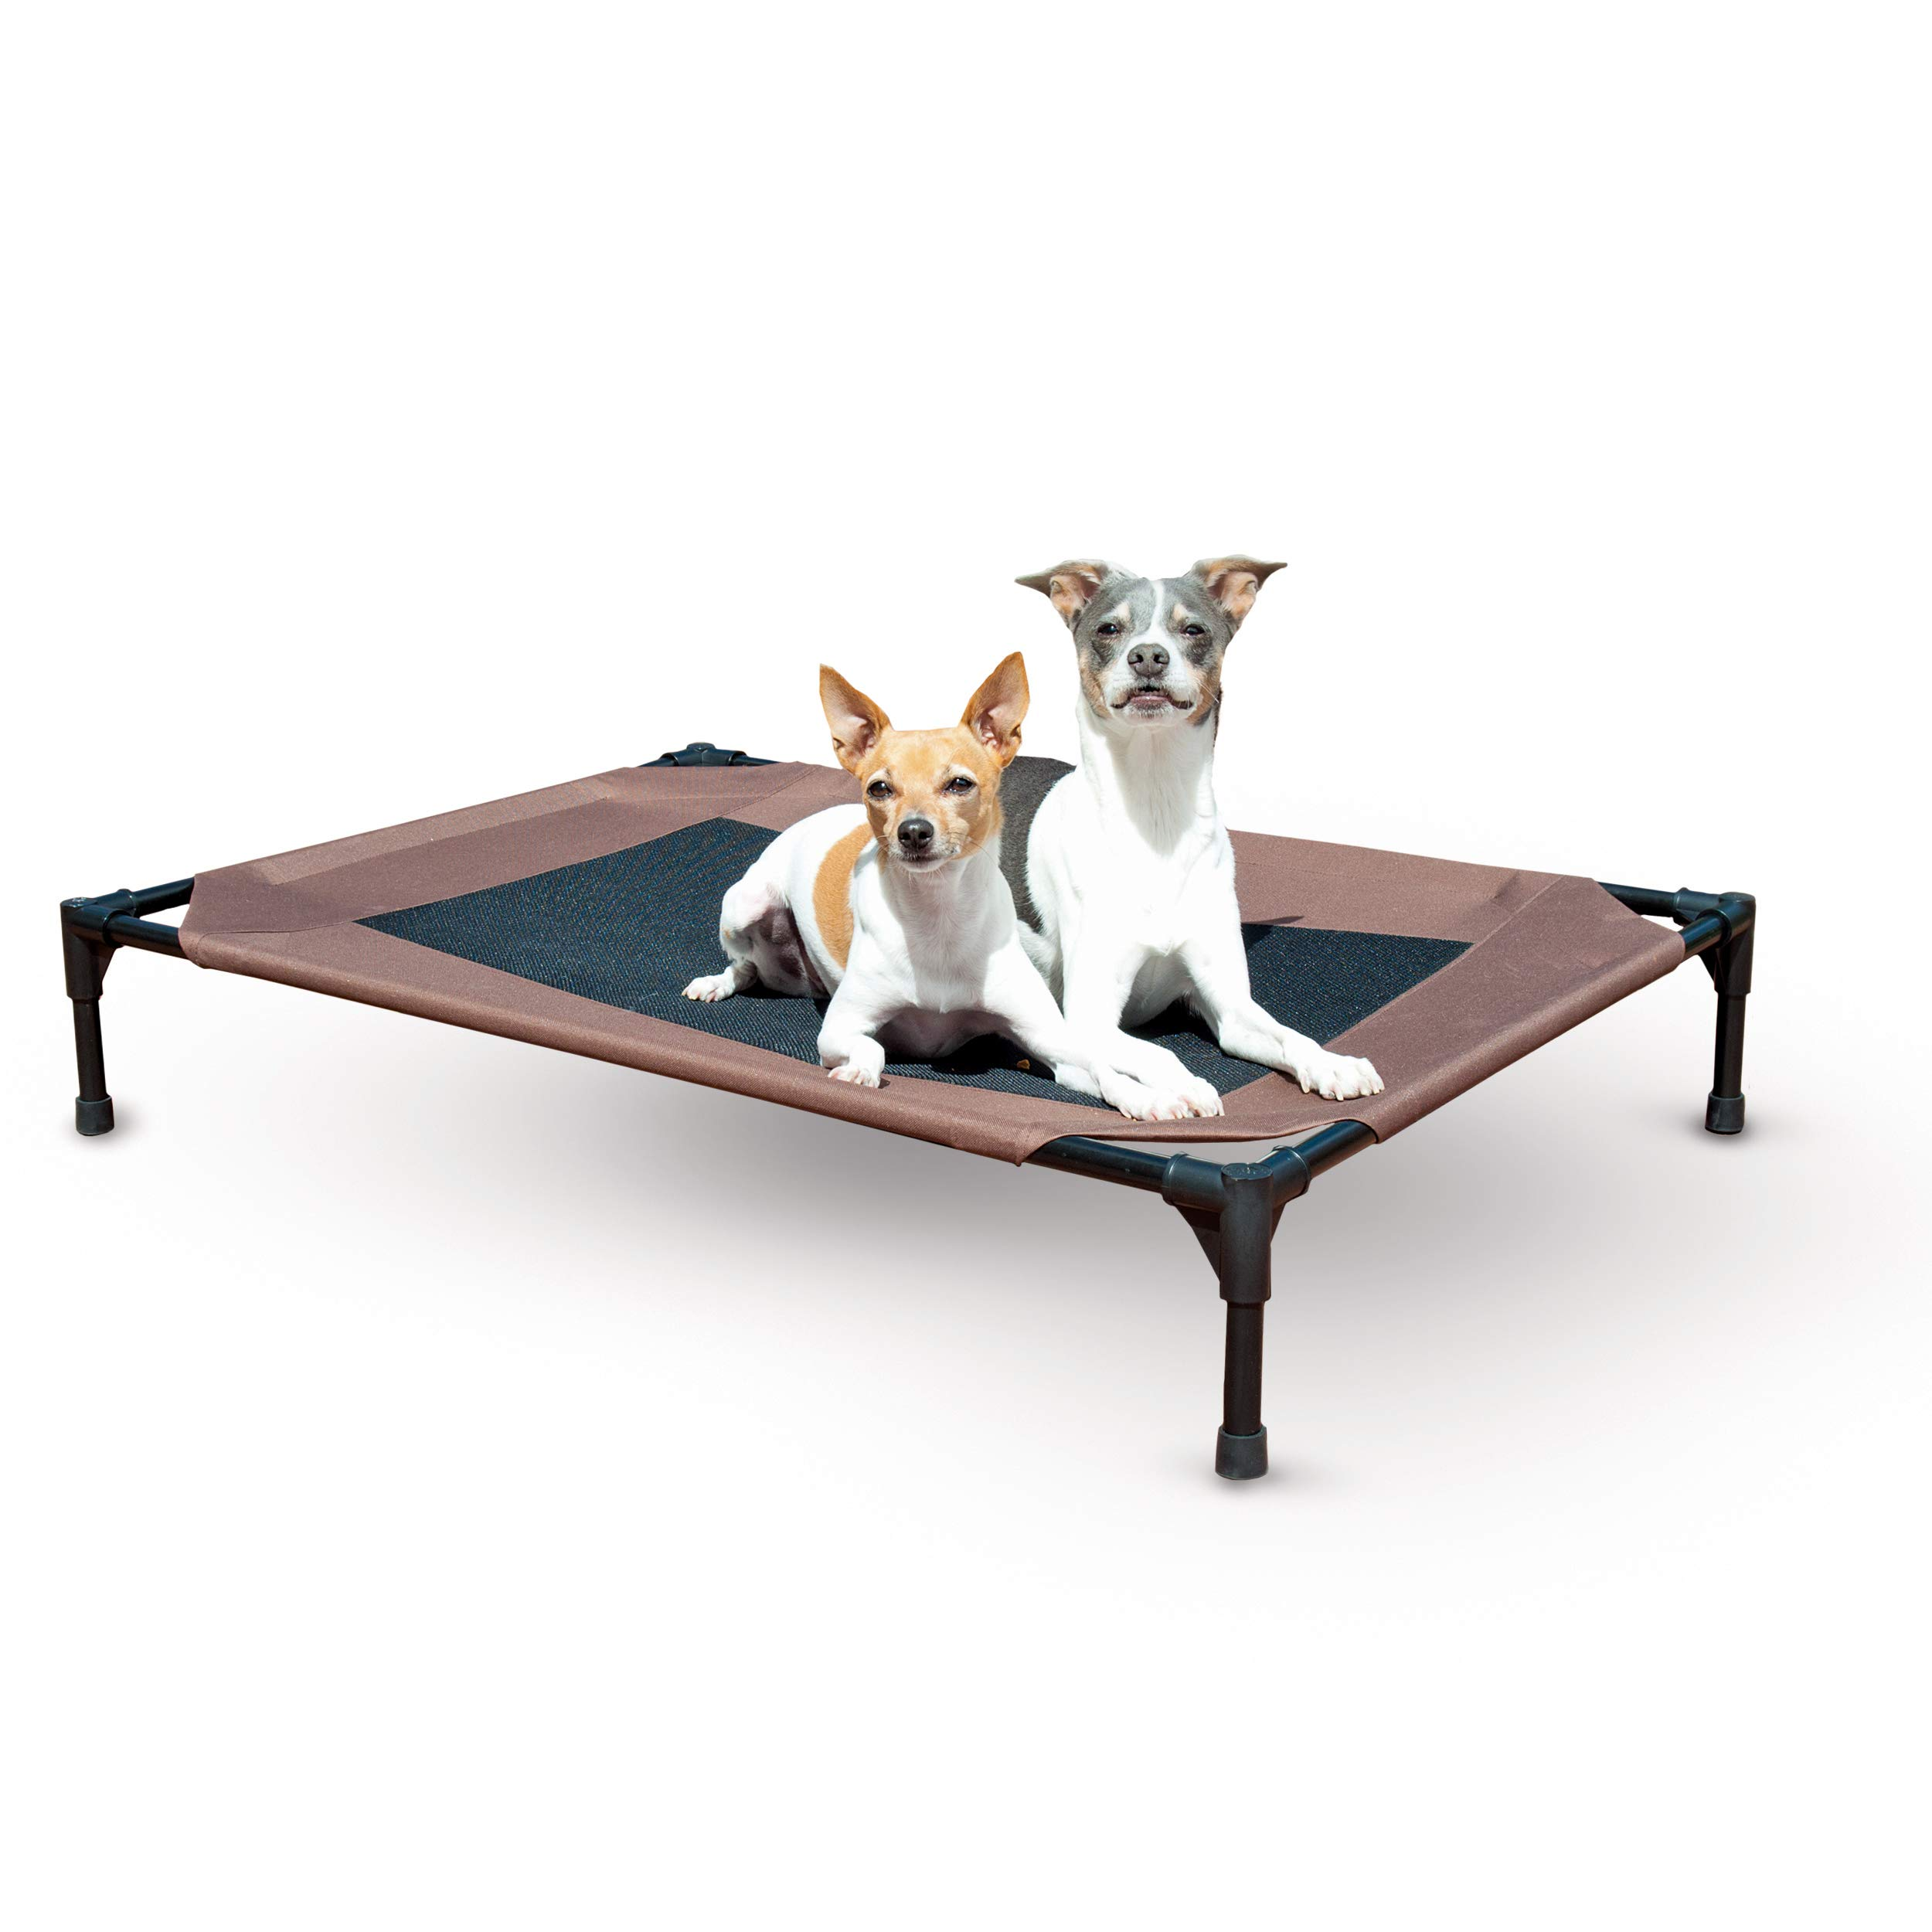 K&H Pet Products Original Dog Cot, Elevated Pet Bed, Chocolate/Mesh, Large